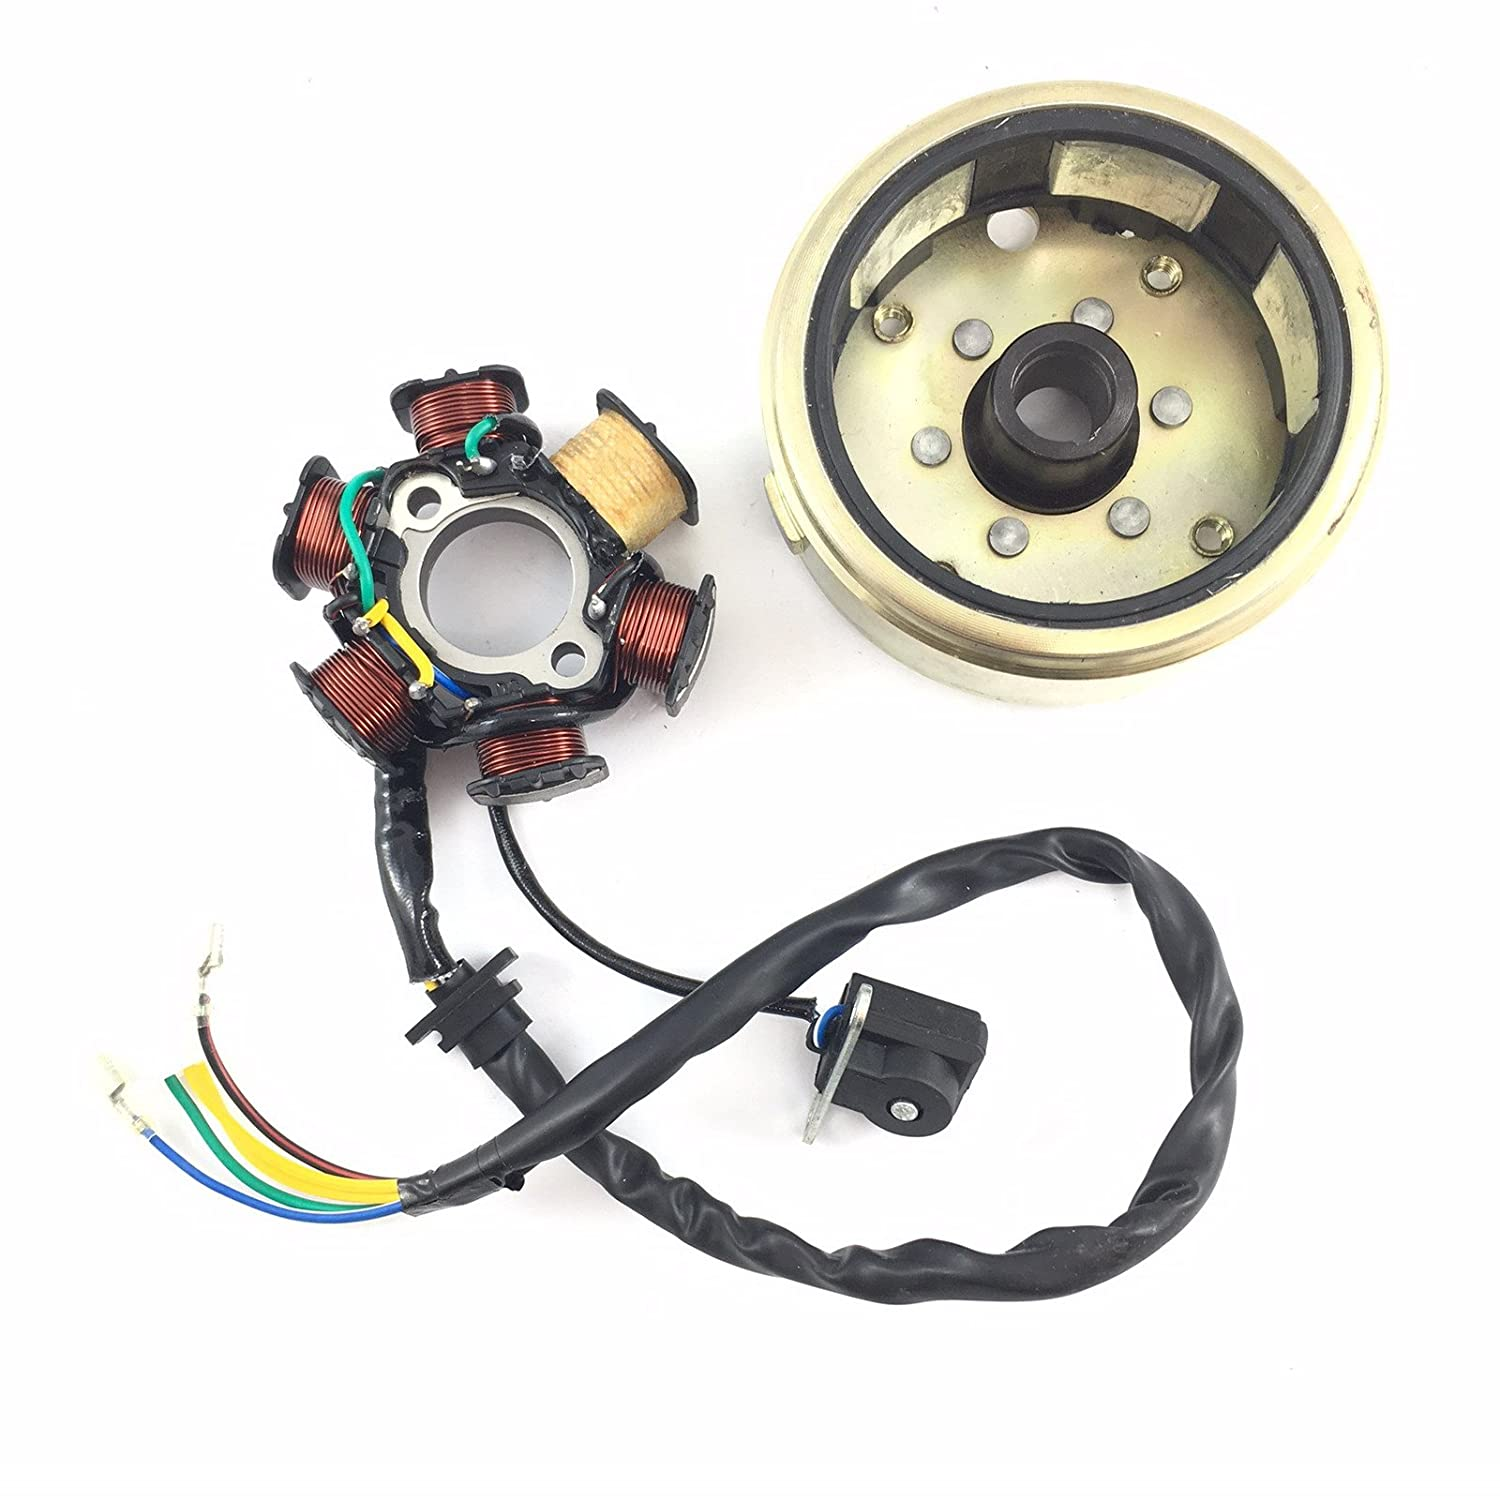 Dc Magneto Stator Flywheel 125 150cc 152qm1 157qmj 6 China Made Atv Wiring Coil D Gy6 Chinese Scooter Moped Quad Go Kart 4 Stroke Taotao Peace Tank Jonway